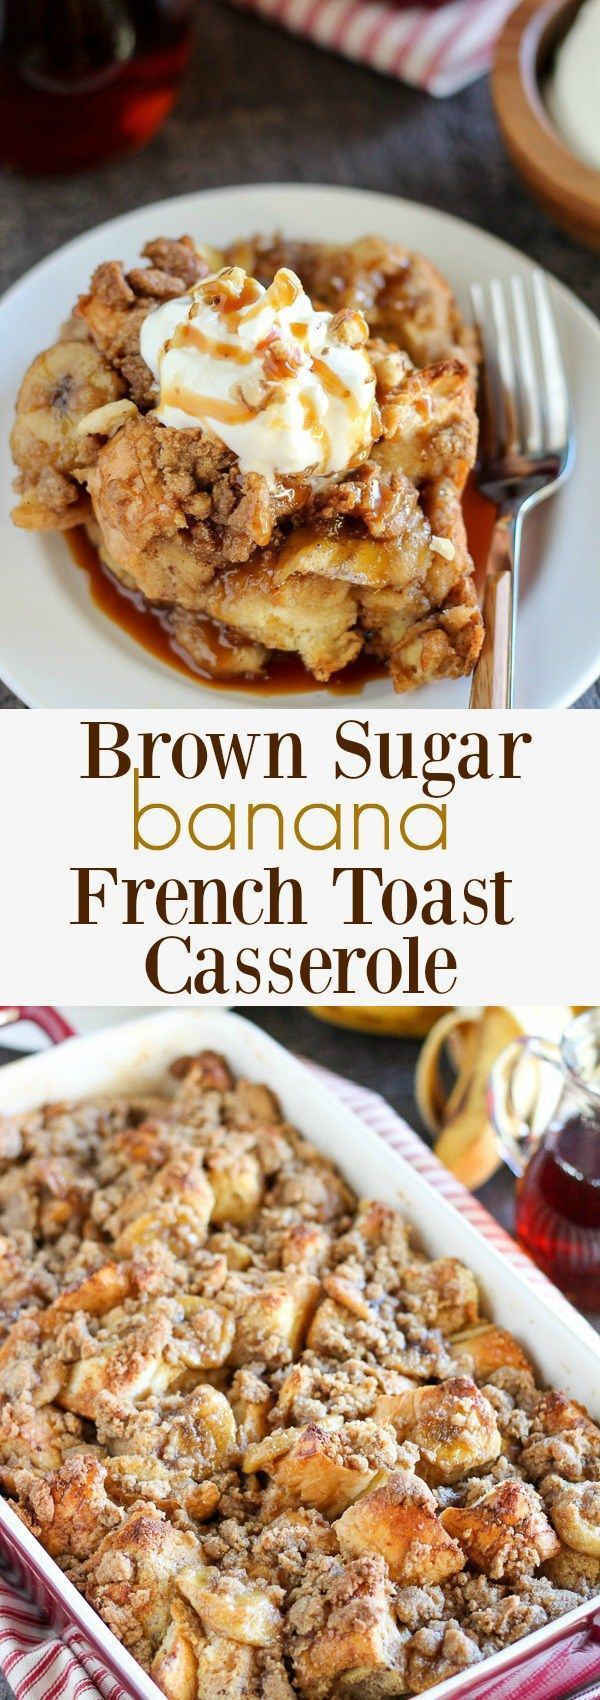 Brown Sugar Banana French Toast Casserole - A make-ahead baked french toast casserole filled with brown sugar caramel sauce, sliced bananas and a brown sugar crumble topping.